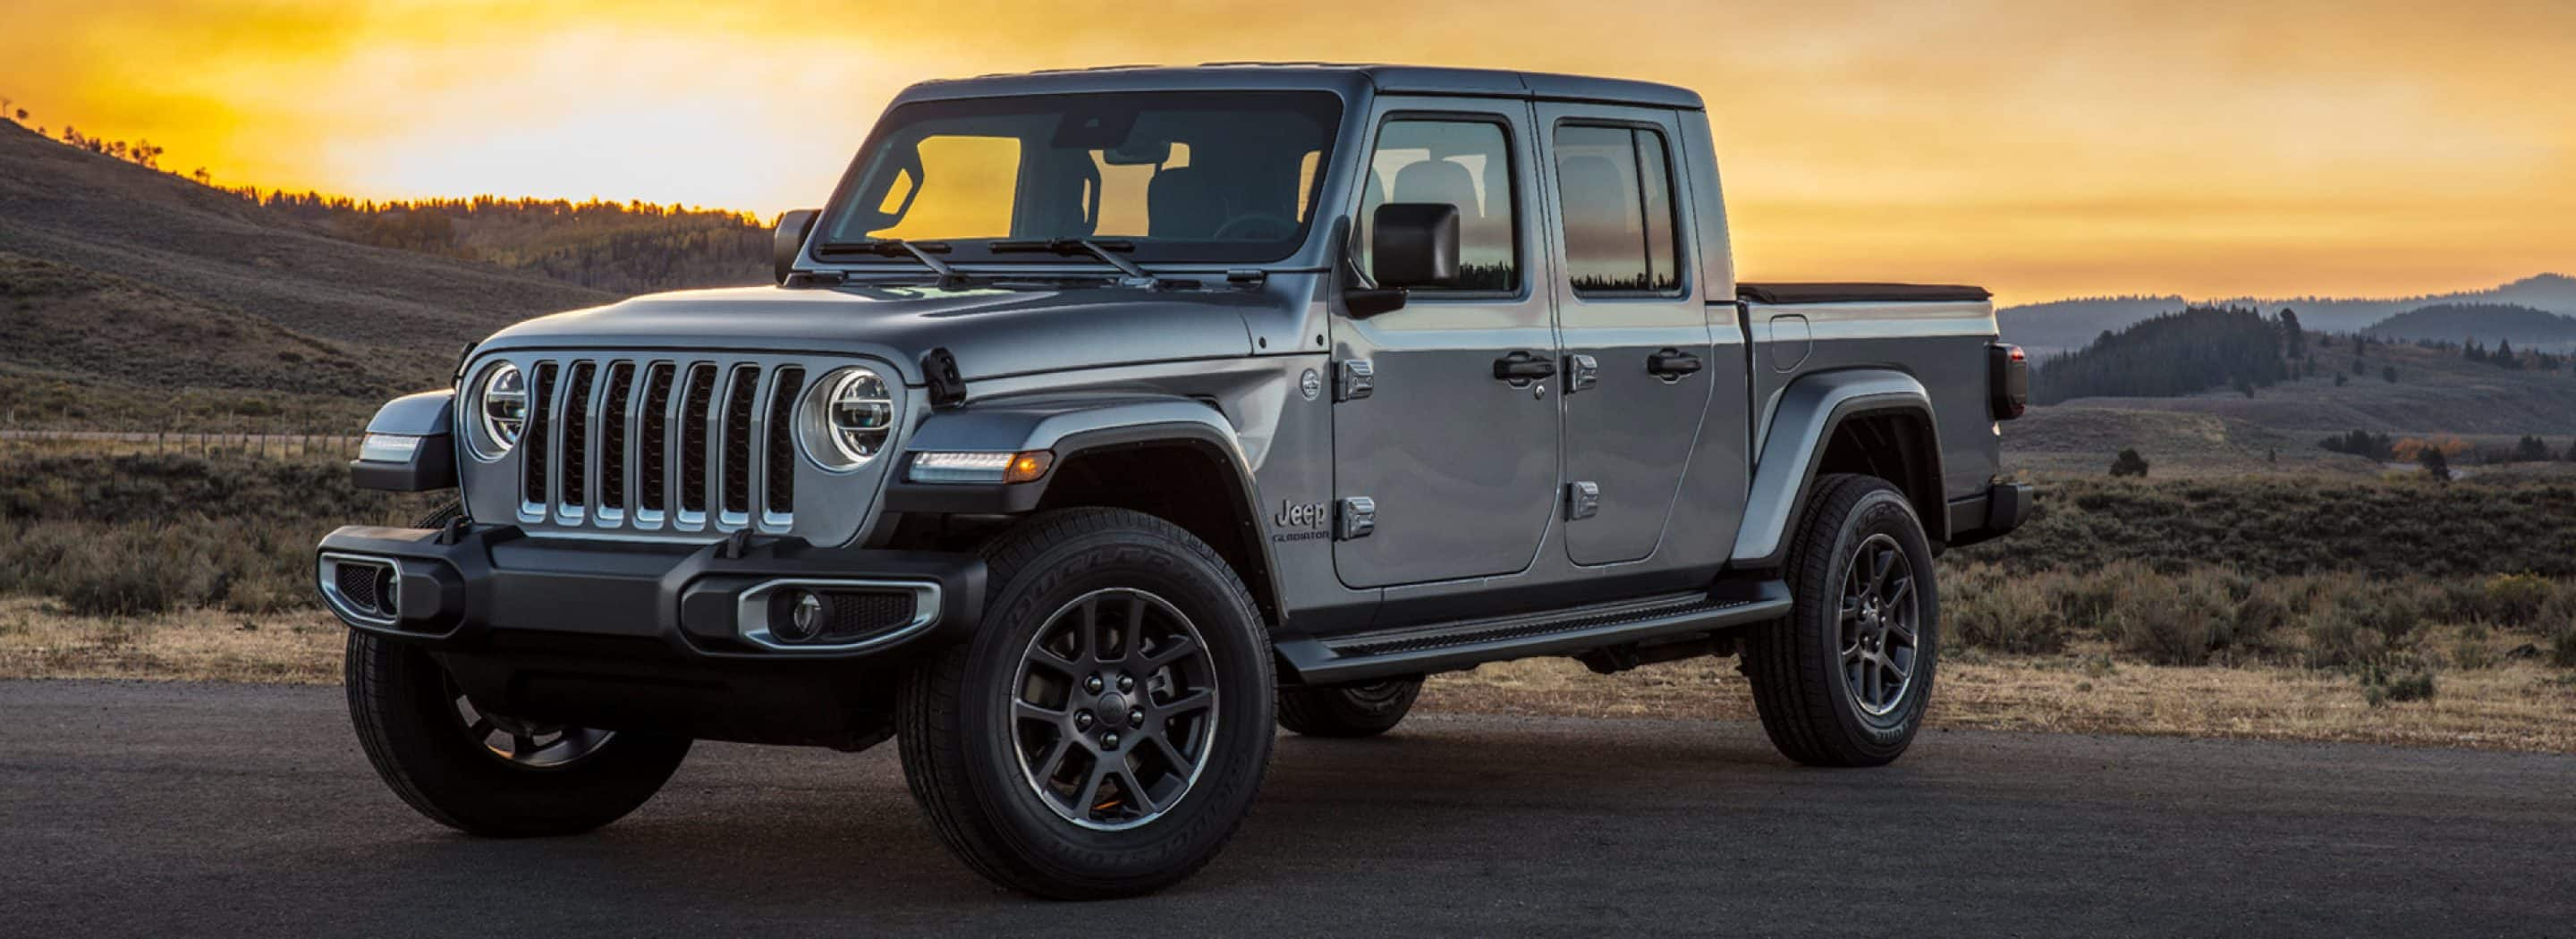 Best Newsgroups 2020 New 2020 Jeep Gladiator announced at 2018 LA Auto Show soon for